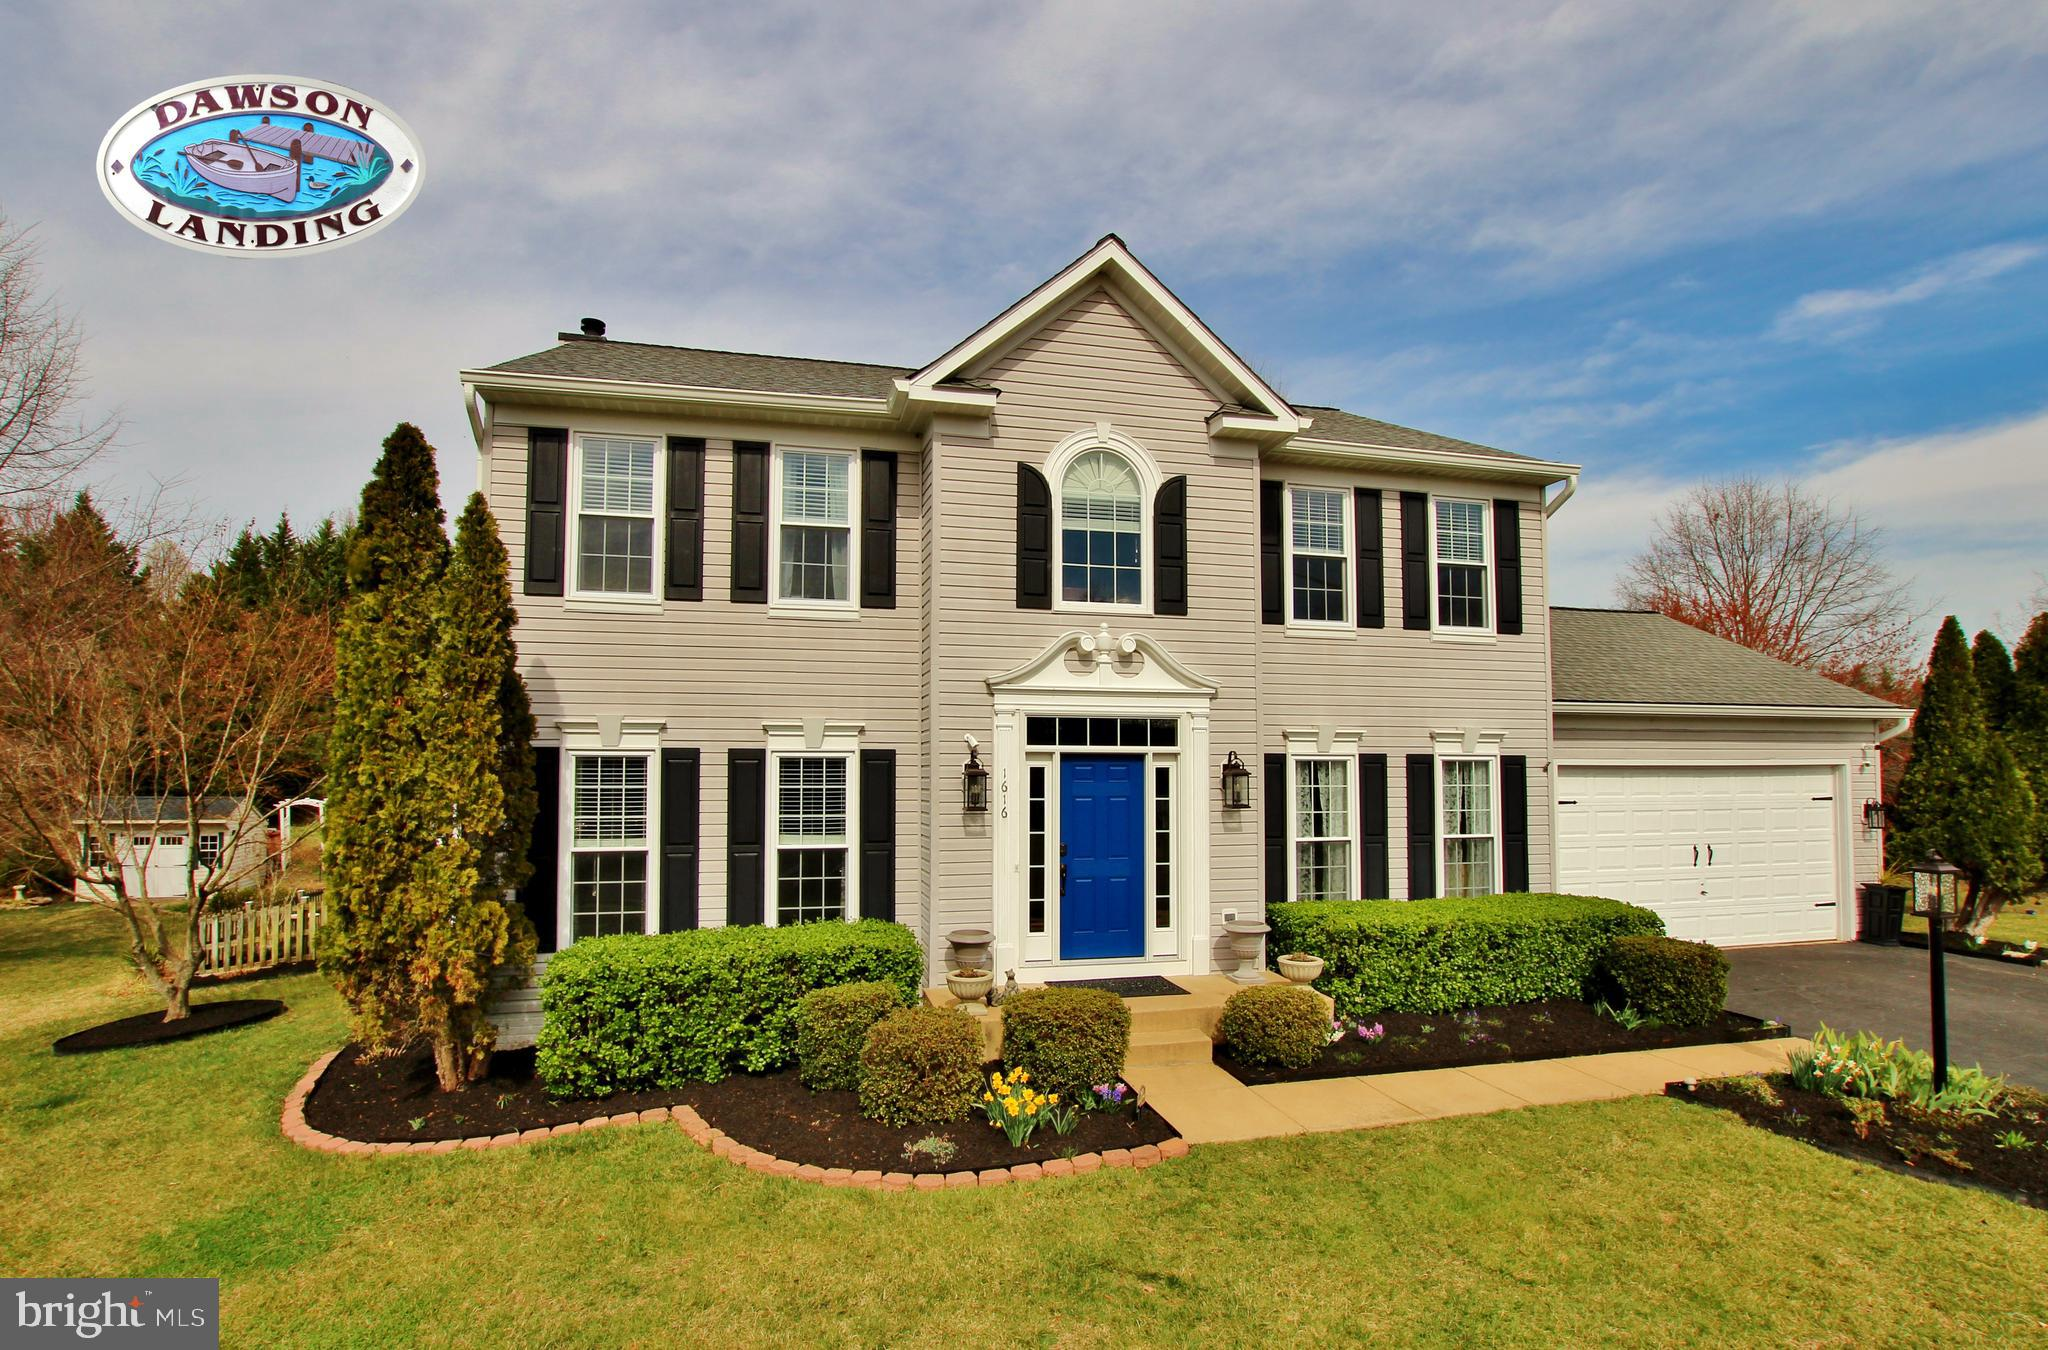 1616 WHISTLING SWAN WAY, WOODBRIDGE, VA 22191